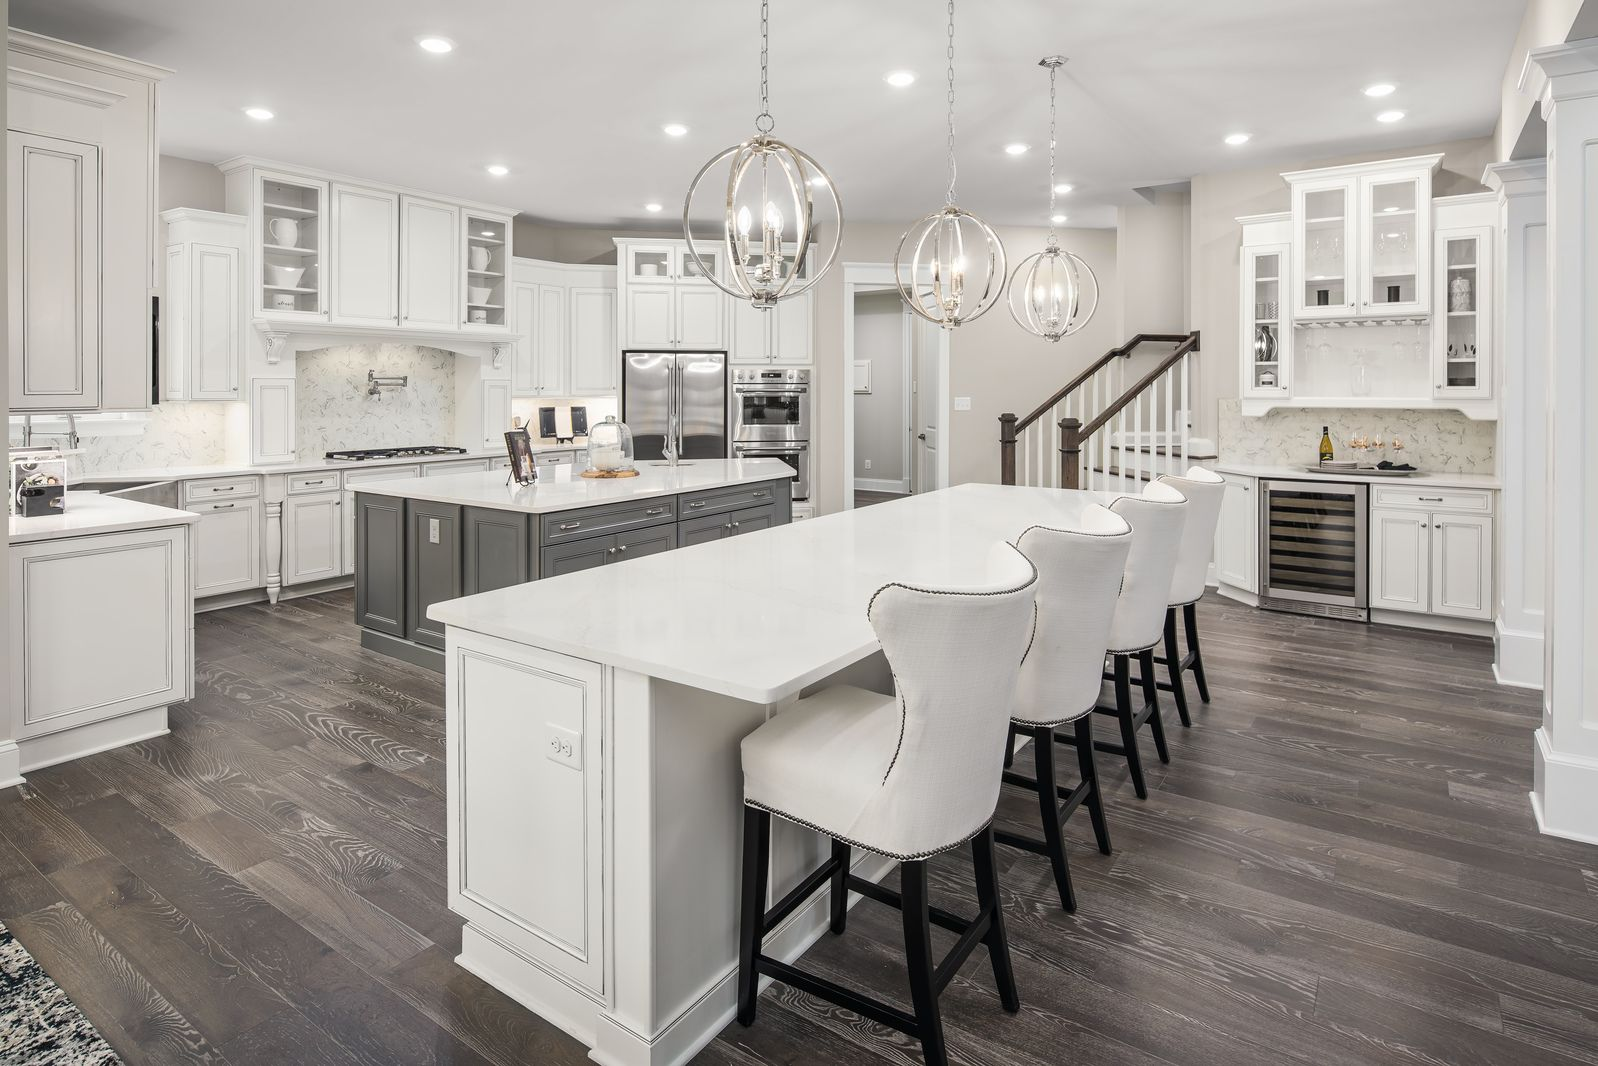 Kitchen featured in the Clifton Park II By NVHomes in Philadelphia, PA